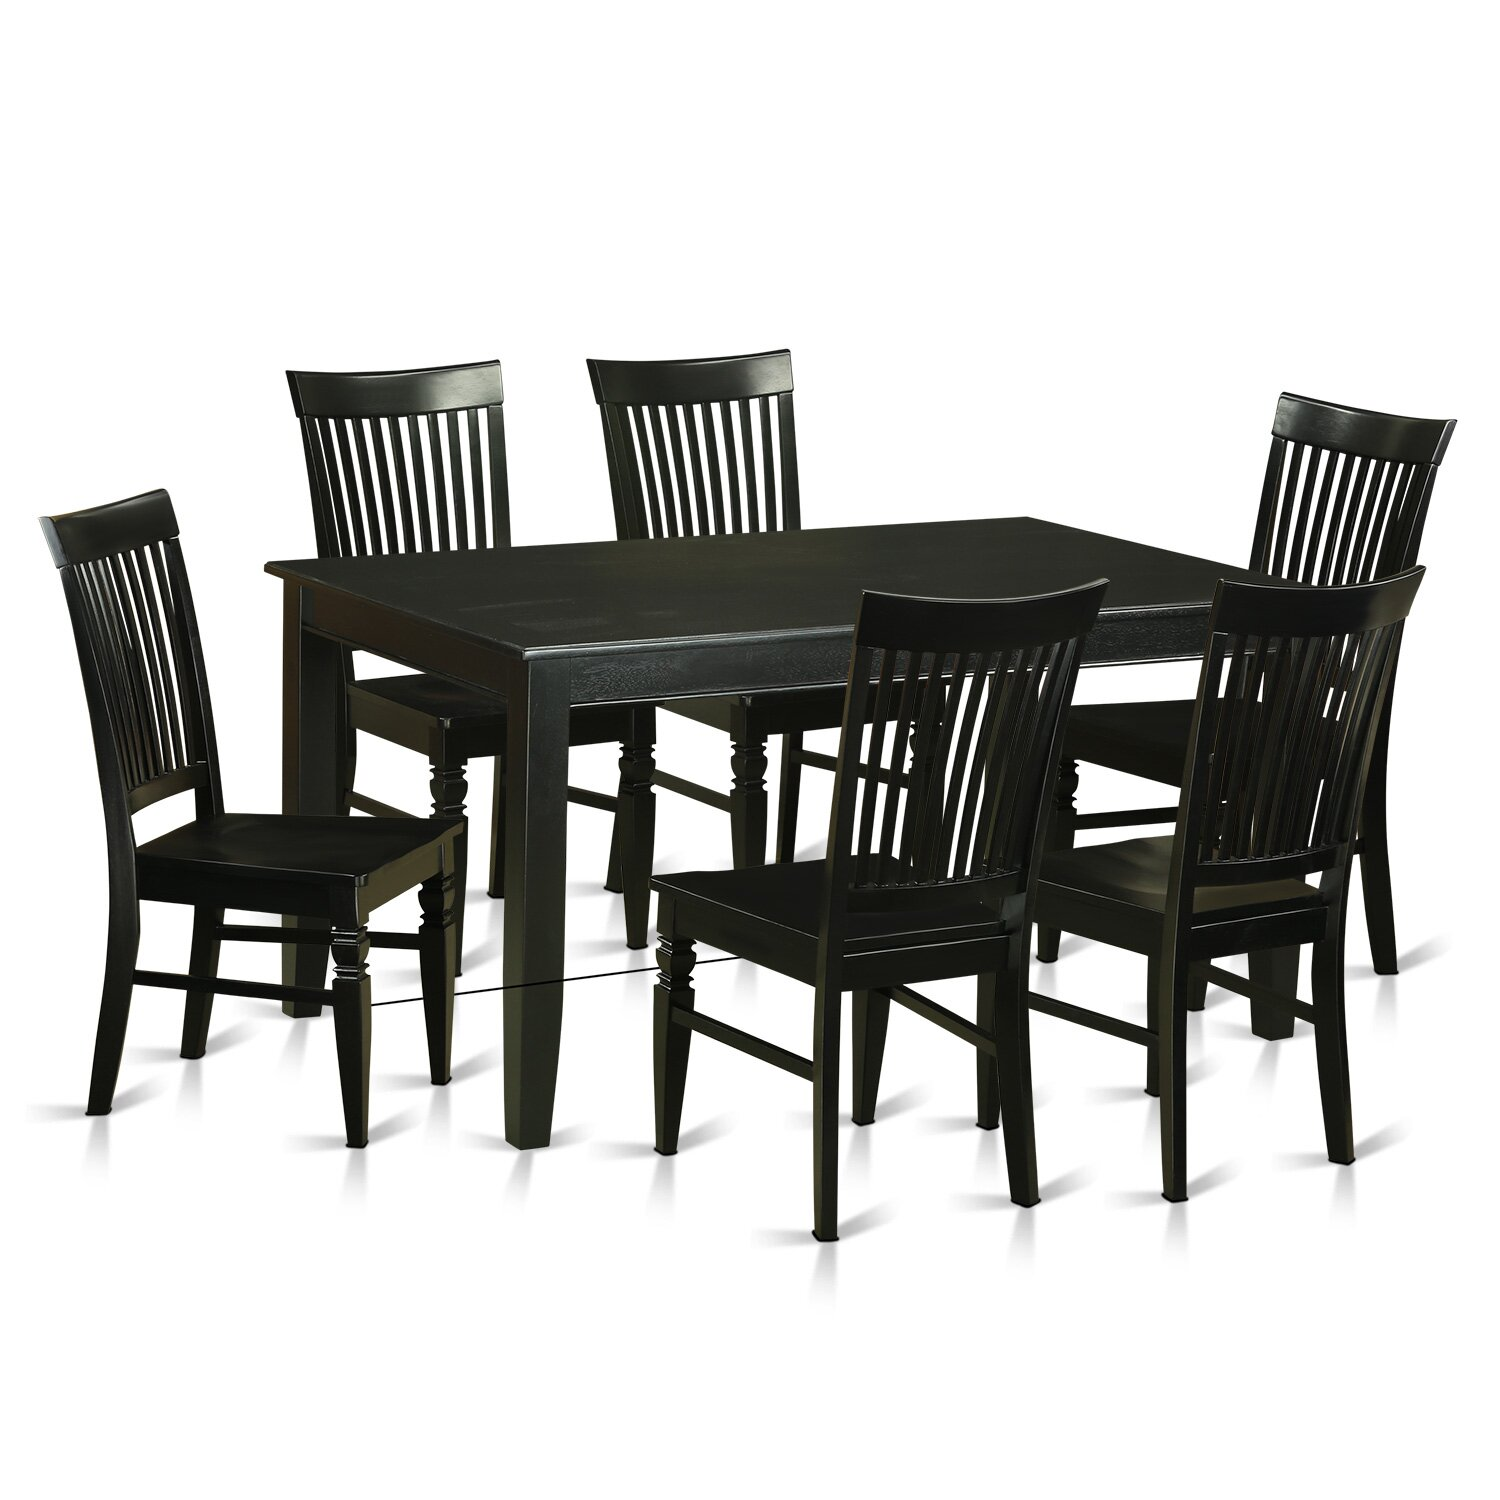 East west dudley 7 piece dining set wayfair for Kitchen table set 6 chairs